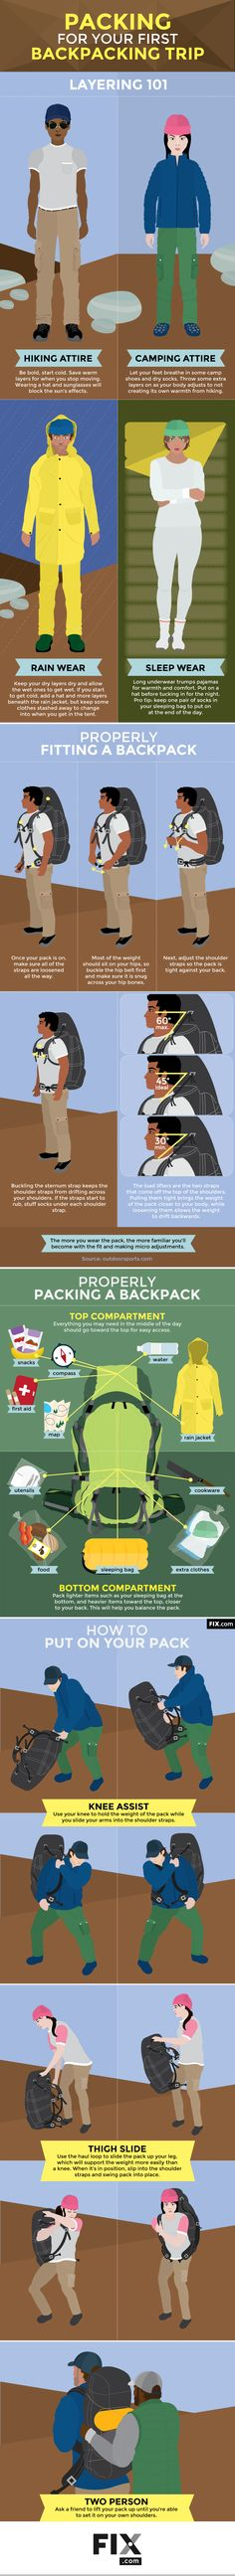 25 Best Camper Packing List images  36385b7e7134